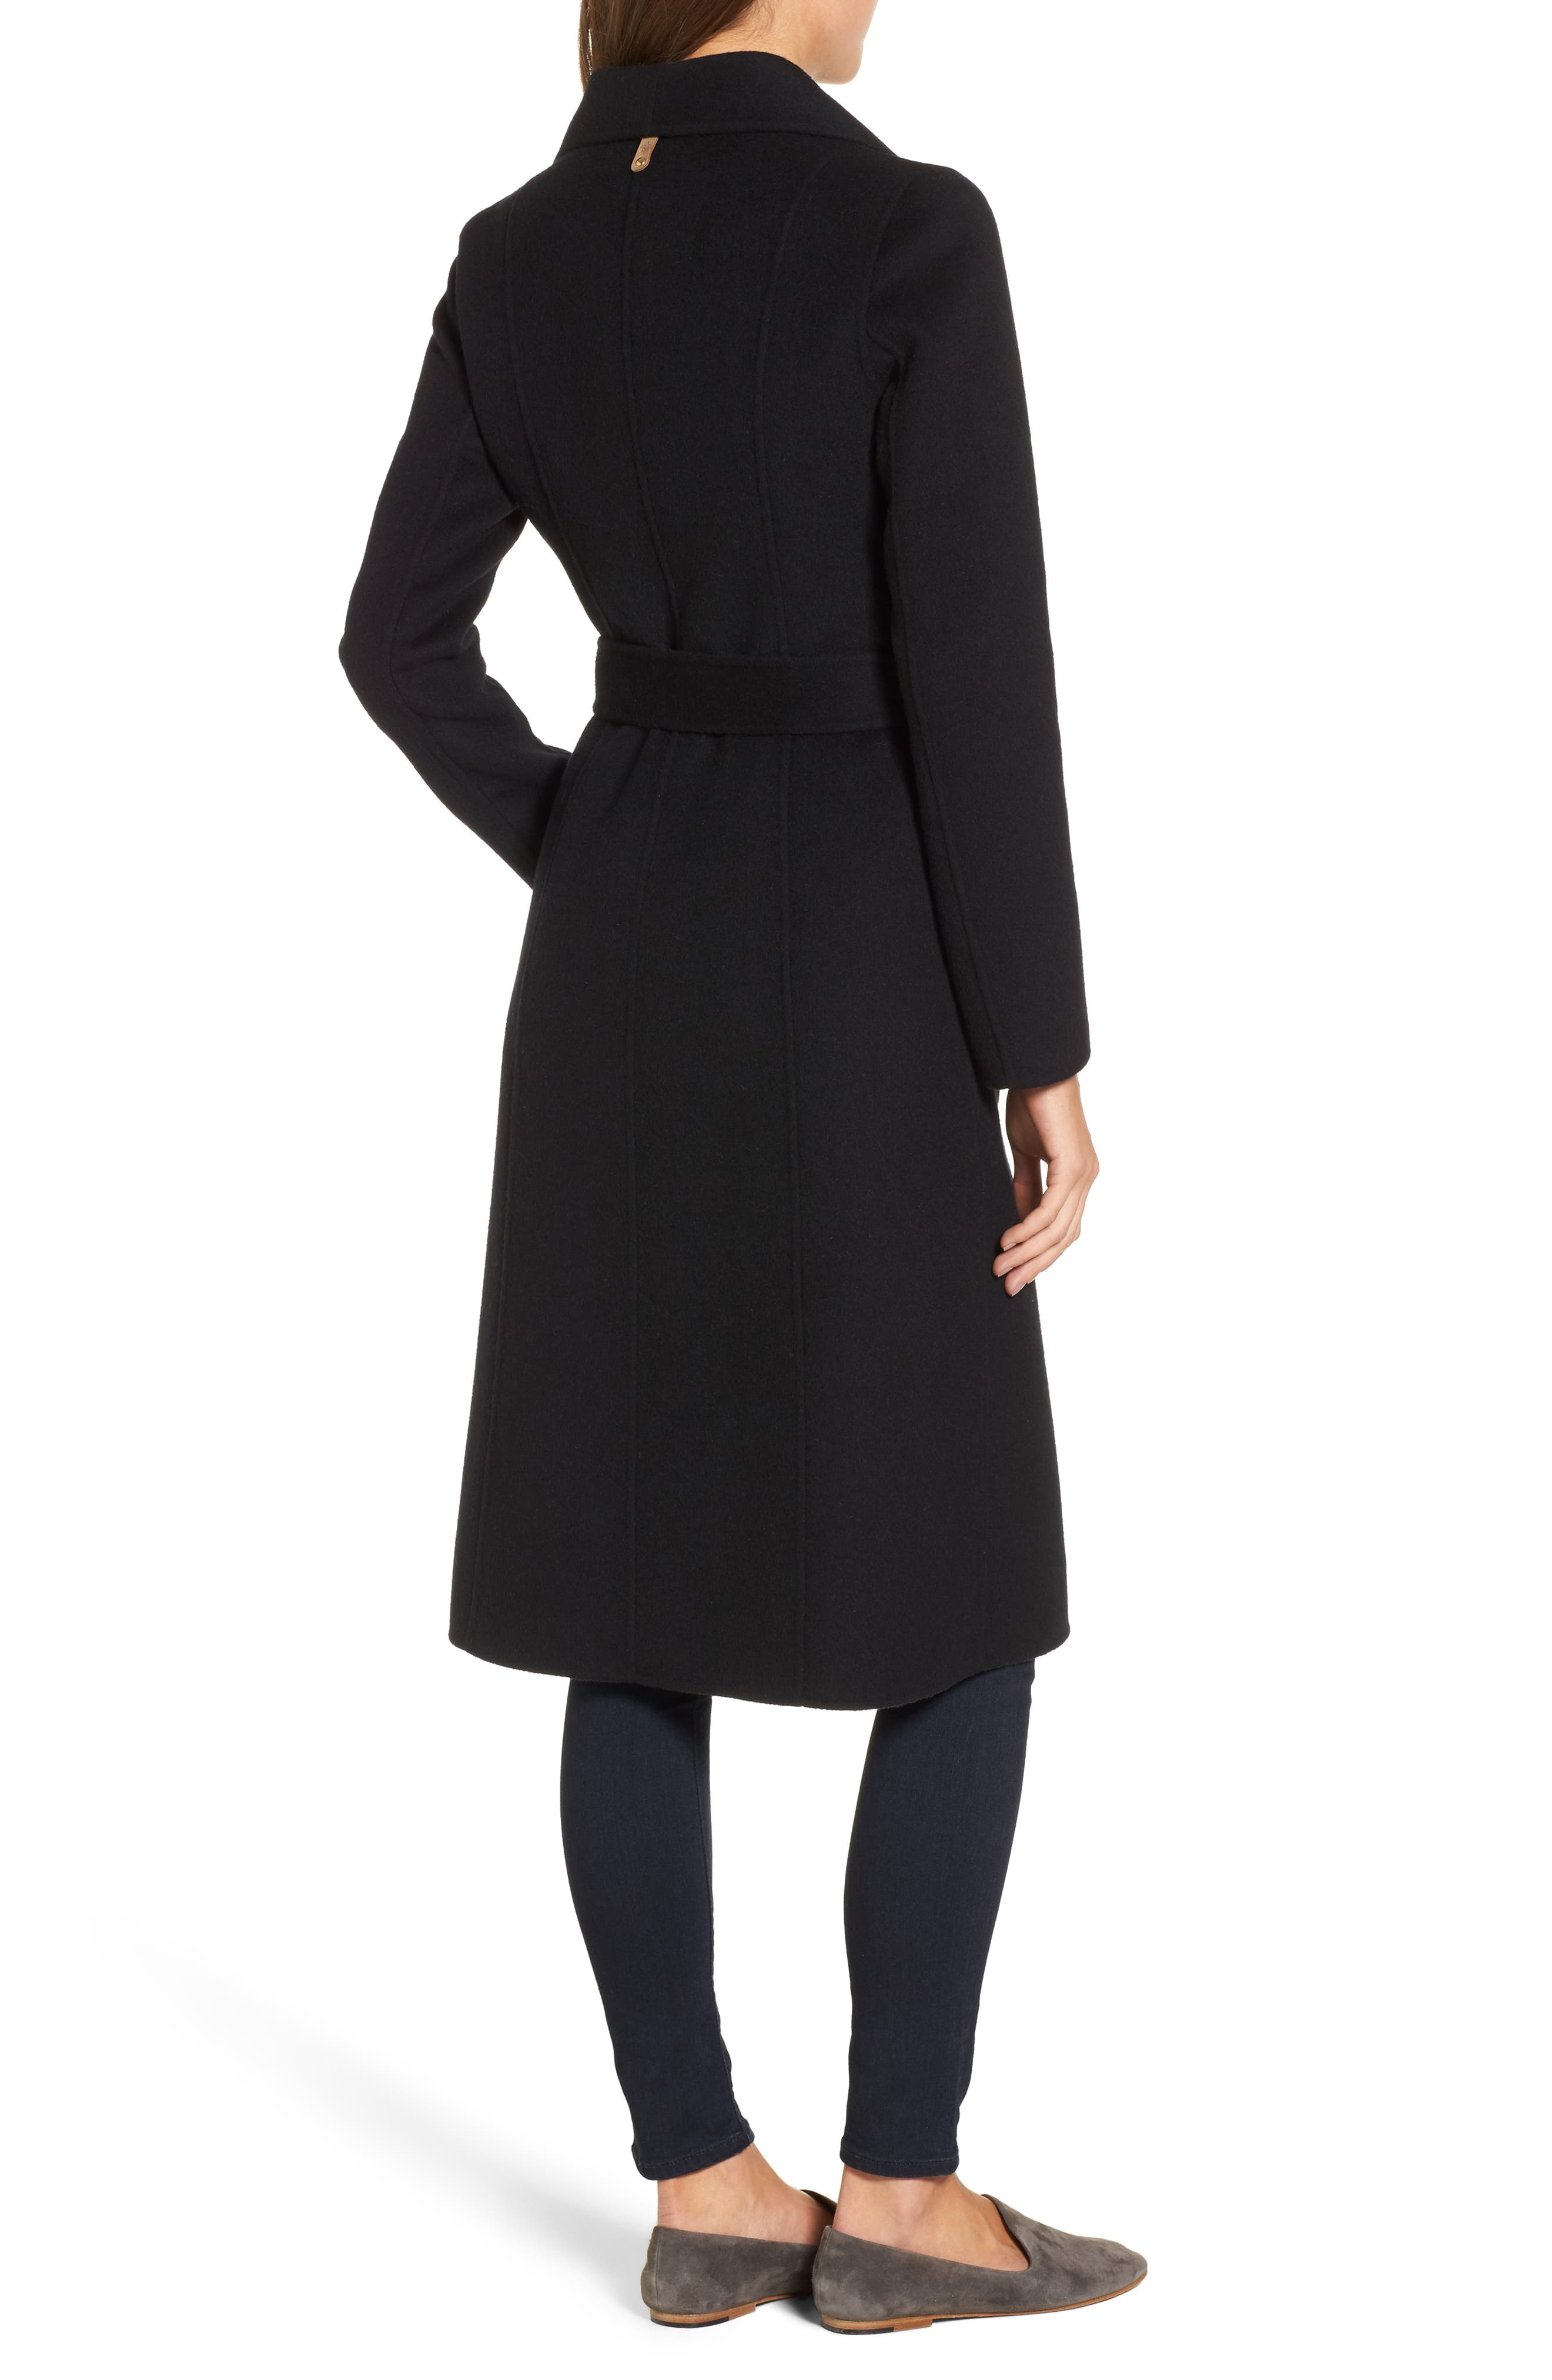 Norah-N Double Breasted Wool Blend Long Military Coat,                             Alternate thumbnail 2, color,                             001